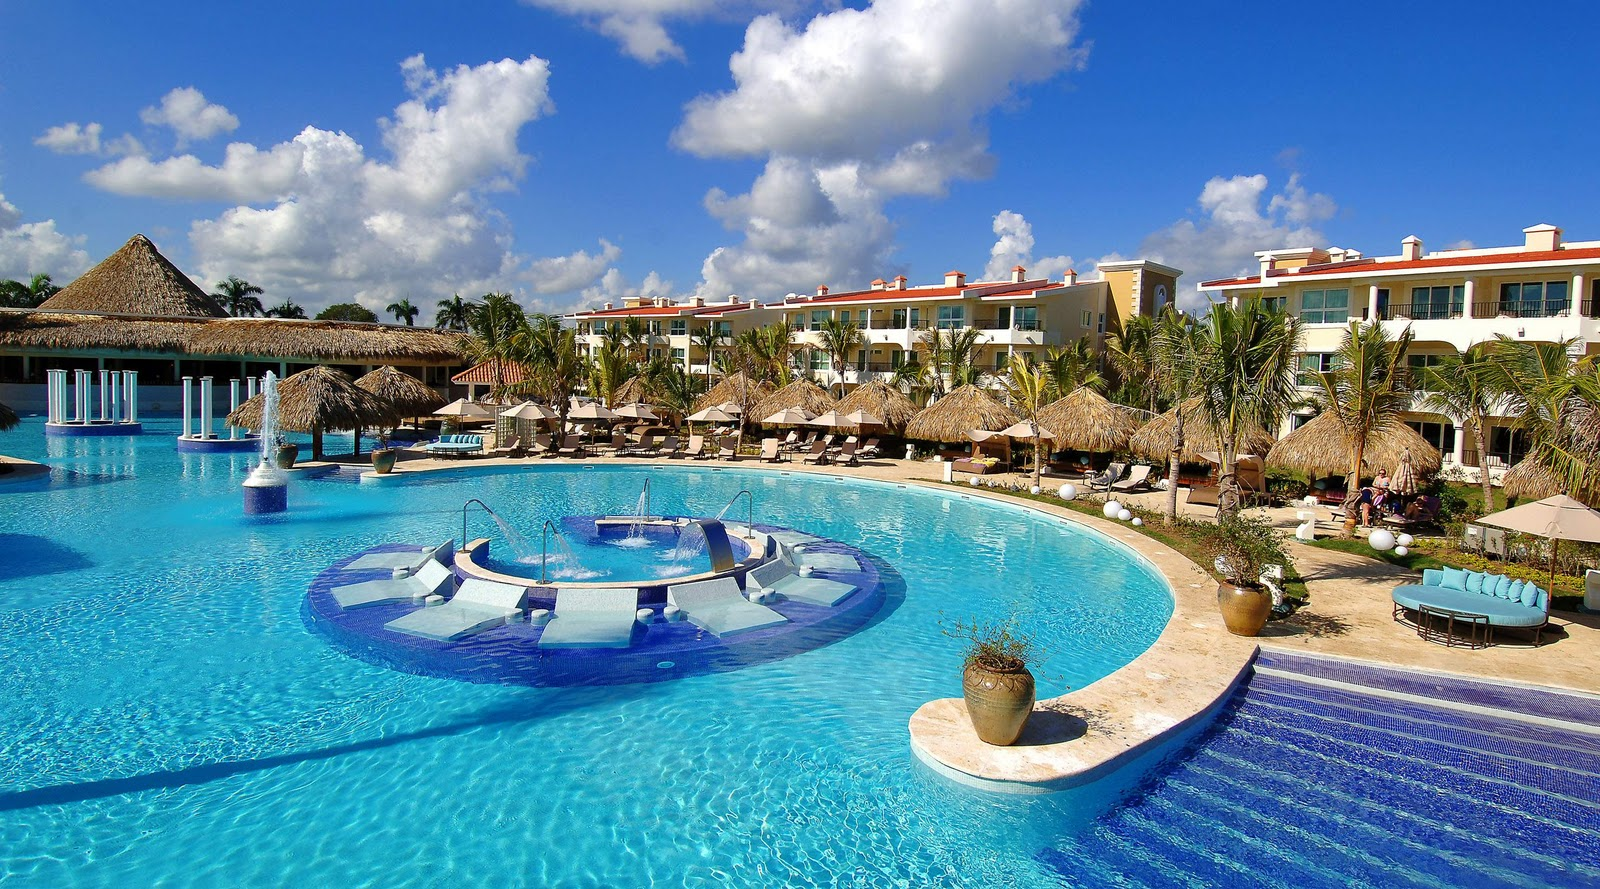 hotel de republica dominicana: